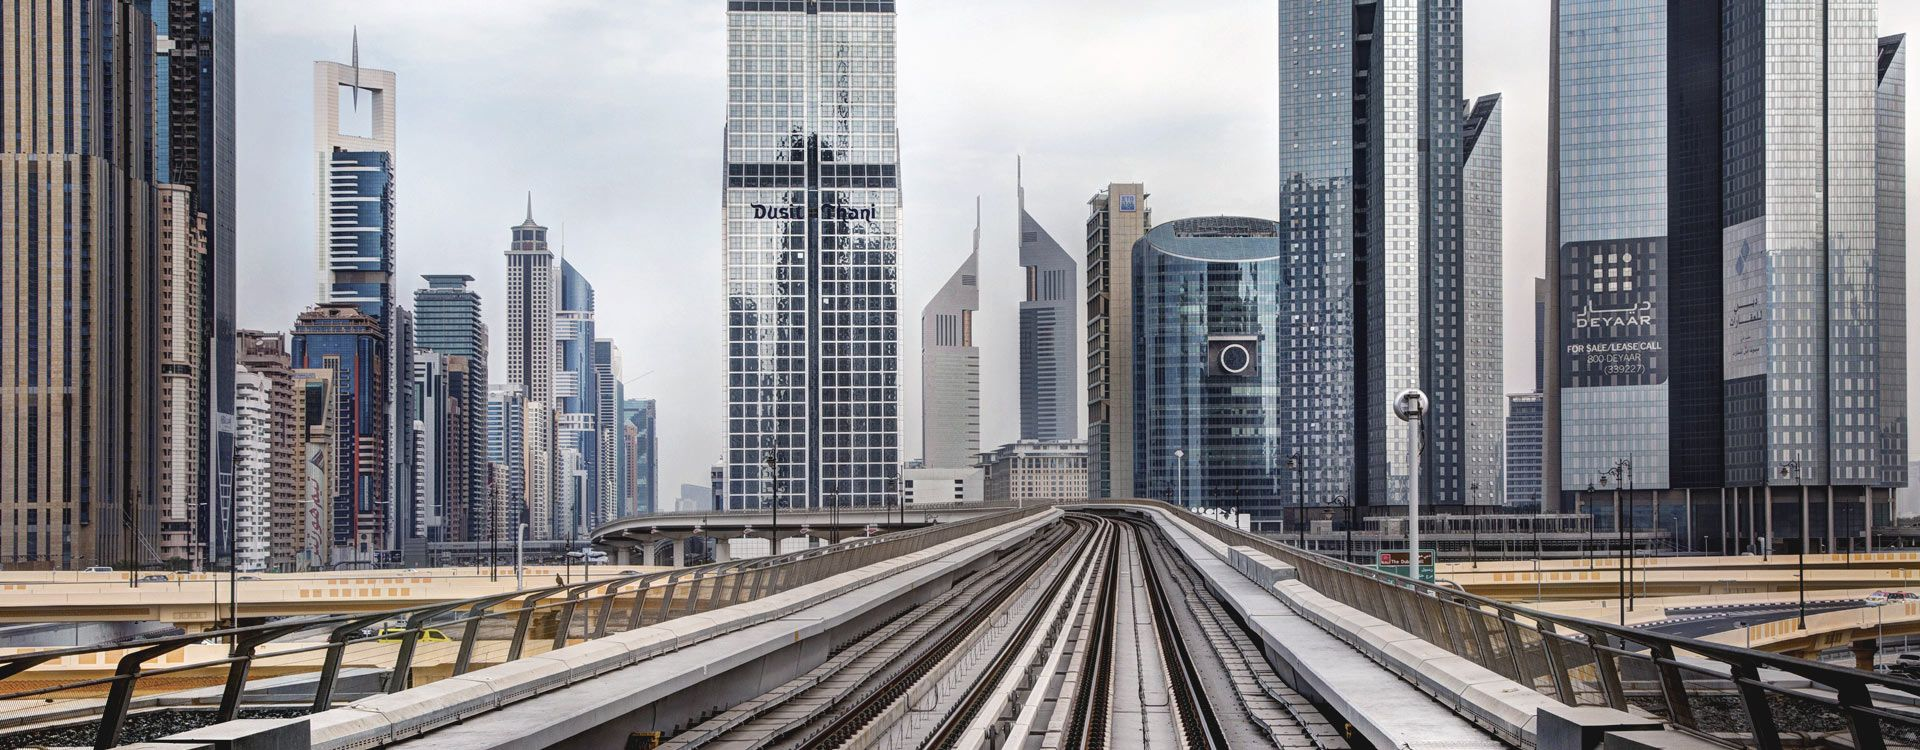 bnr-Dubai-Integrated-Rail-Master-Plan_Transport-and-Infrastructure